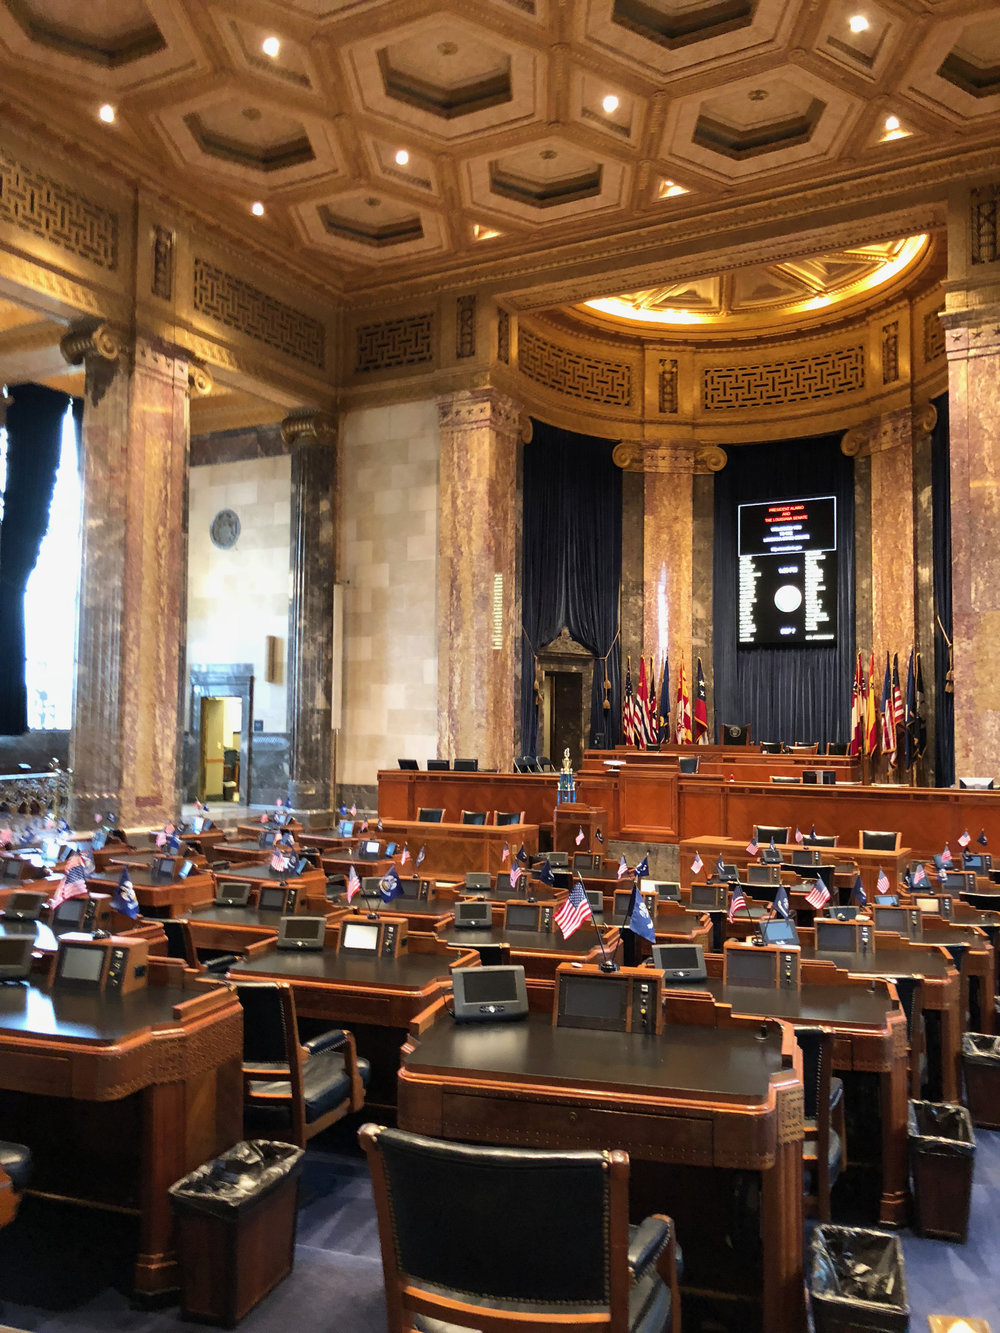 the senate chamber at the Louisiana state capitol